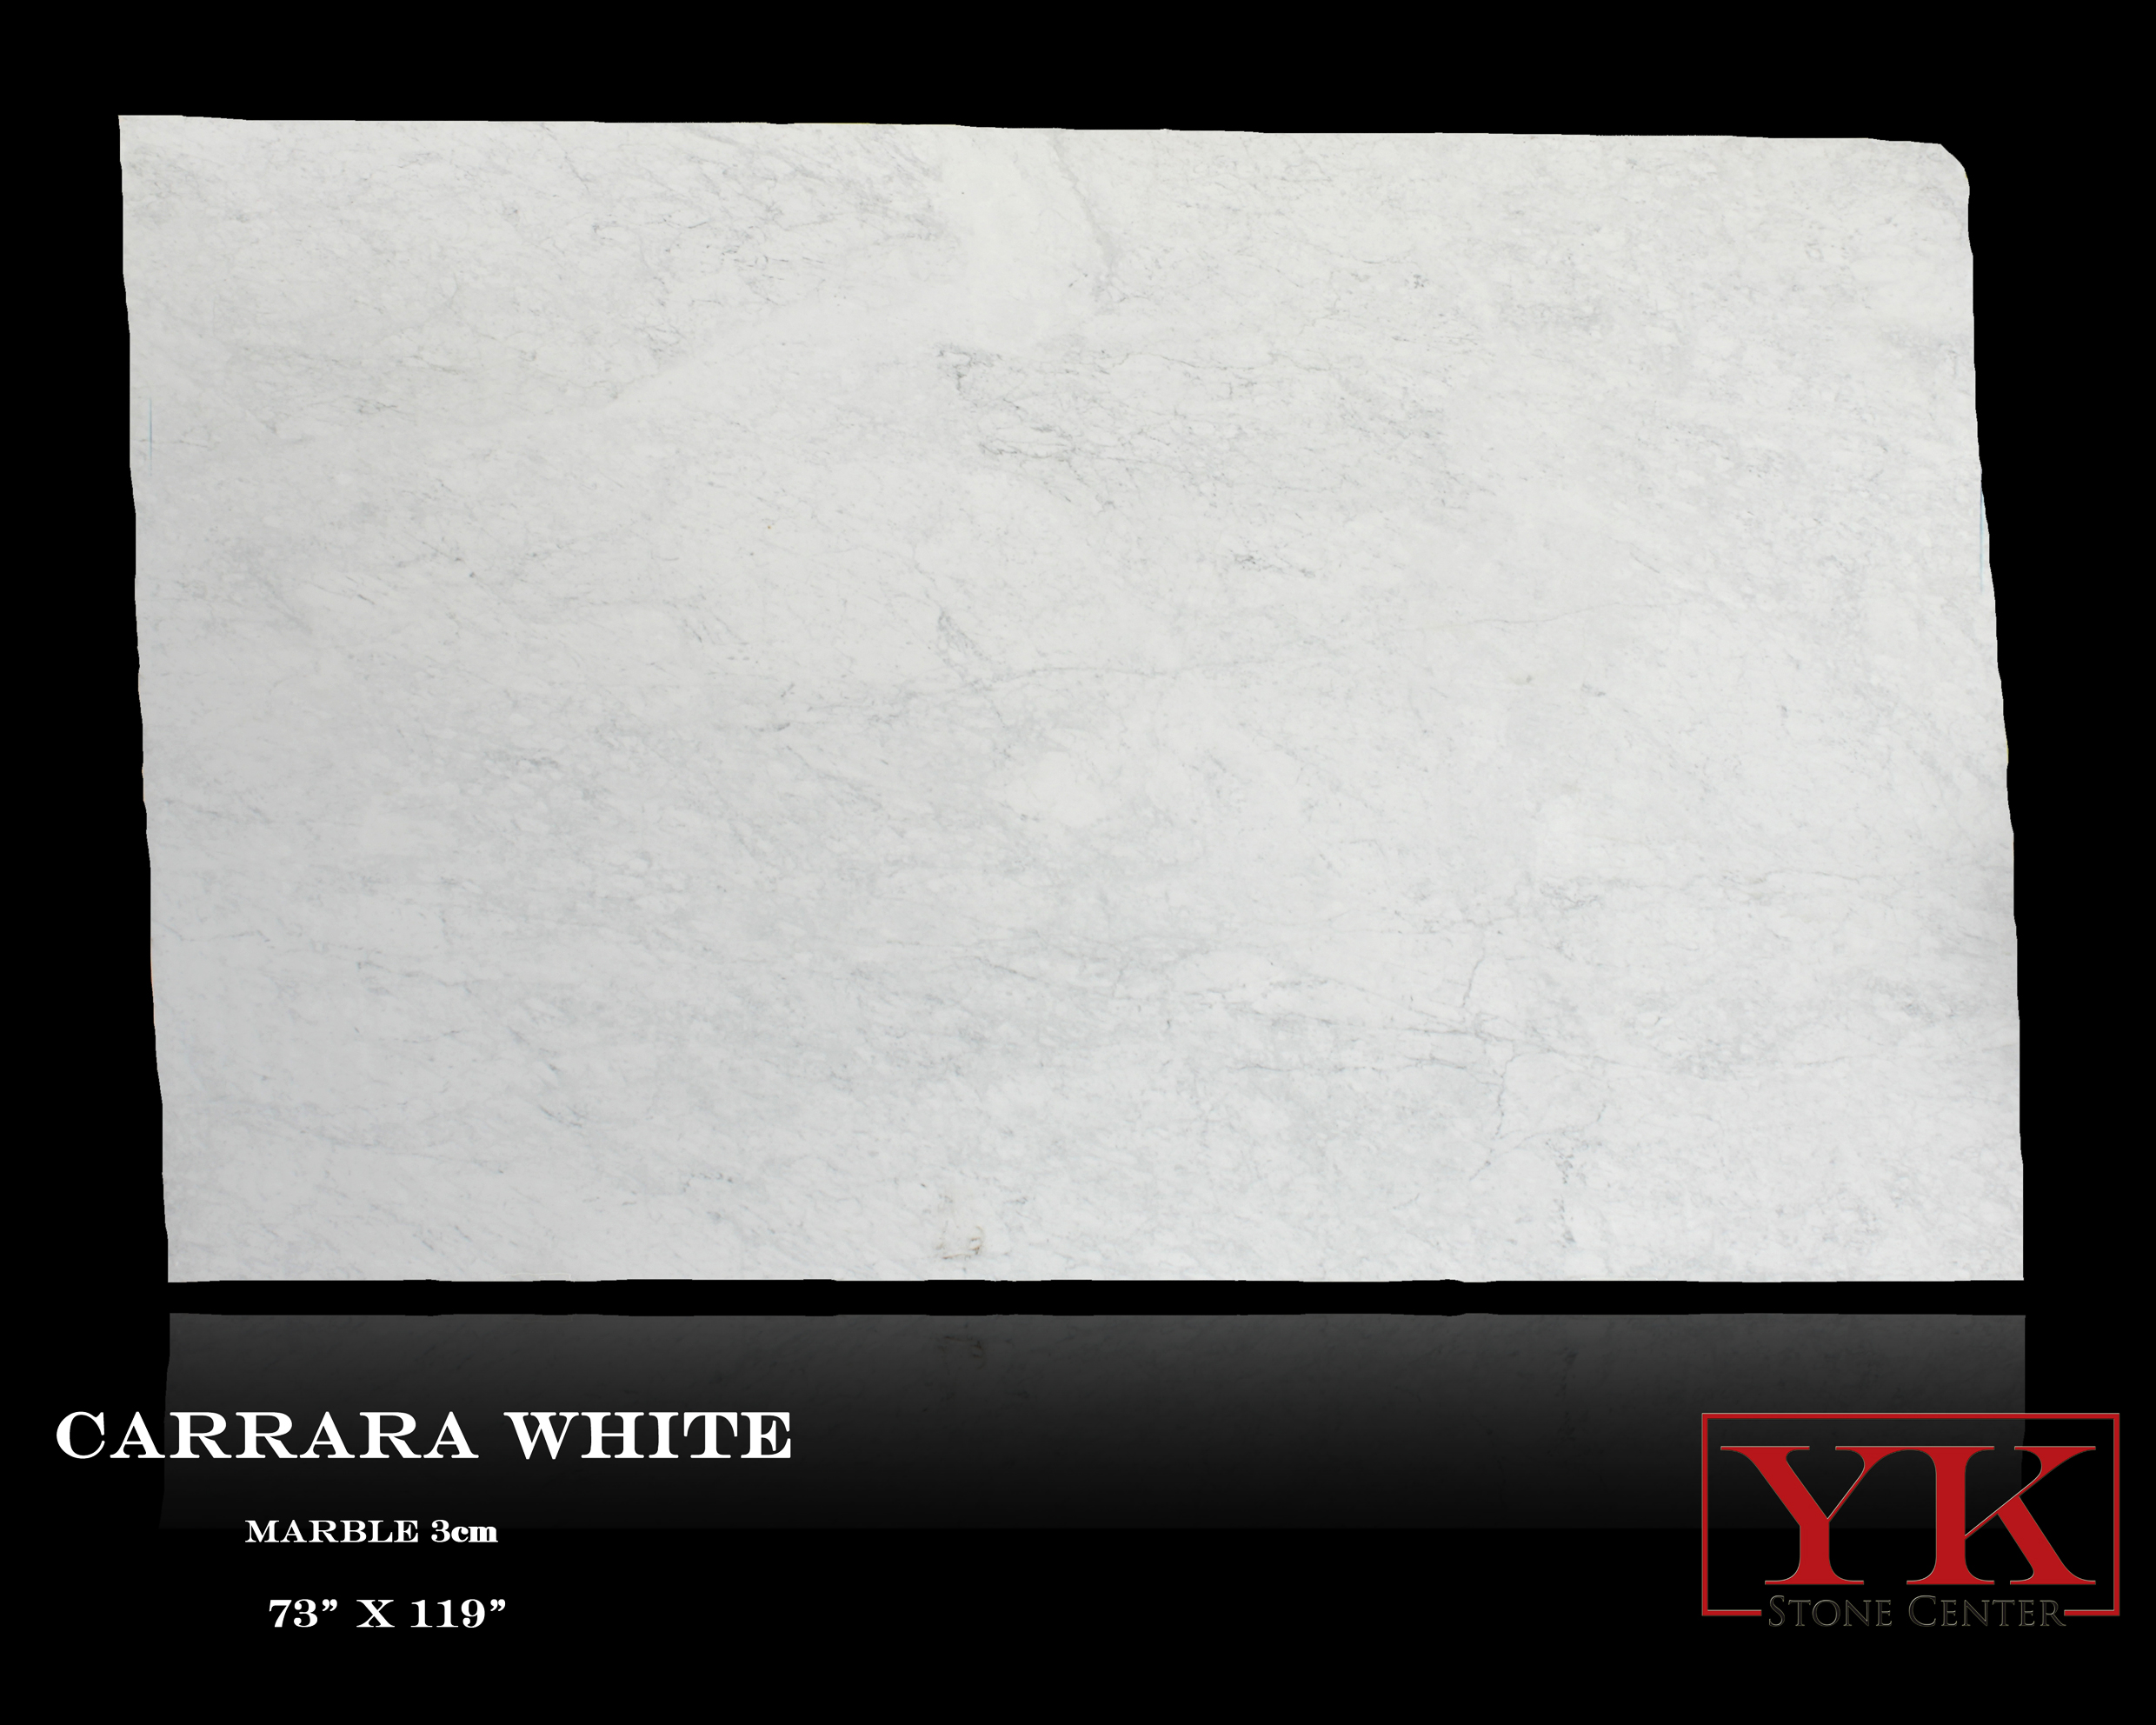 Carrara White Marble slabs denver, yk stone center showroom, natural stone slabs